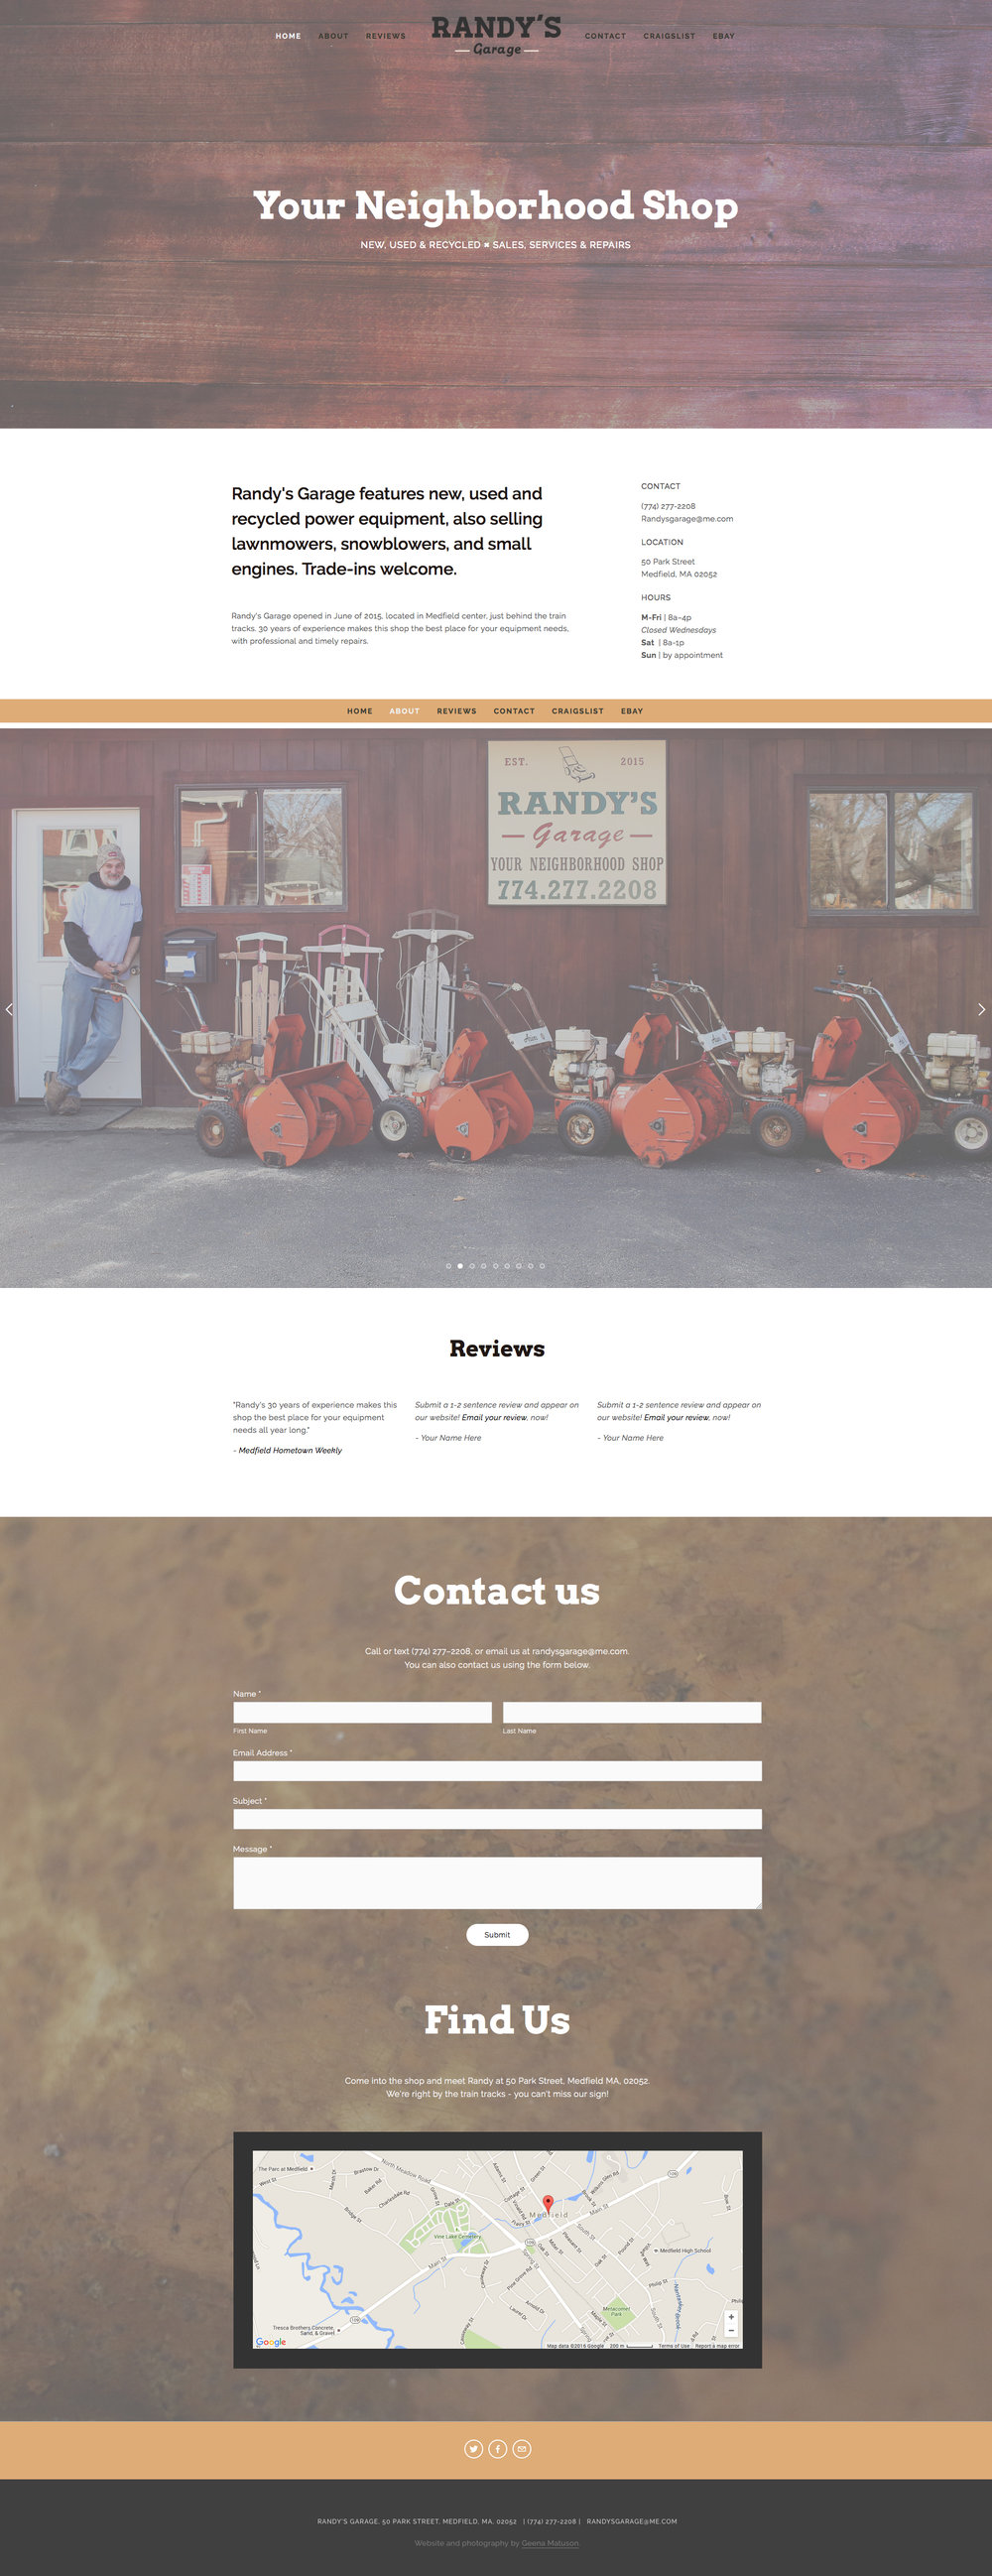 Overview of Randy's Garage website design by Geena Matuson @geenamatuson #thegirlmirage